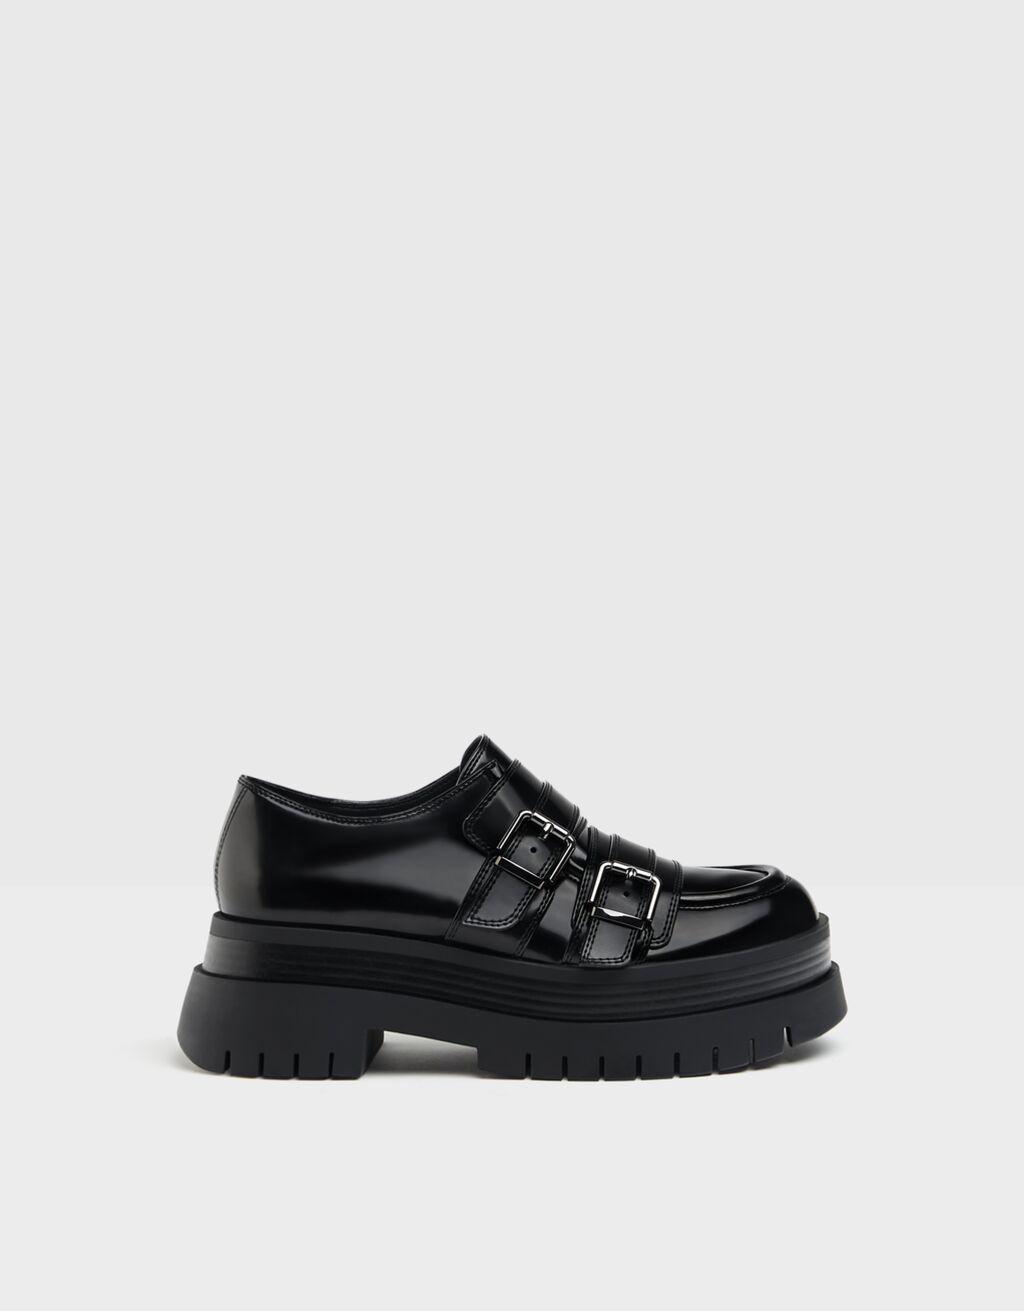 Flat XL platform shoes with buckles